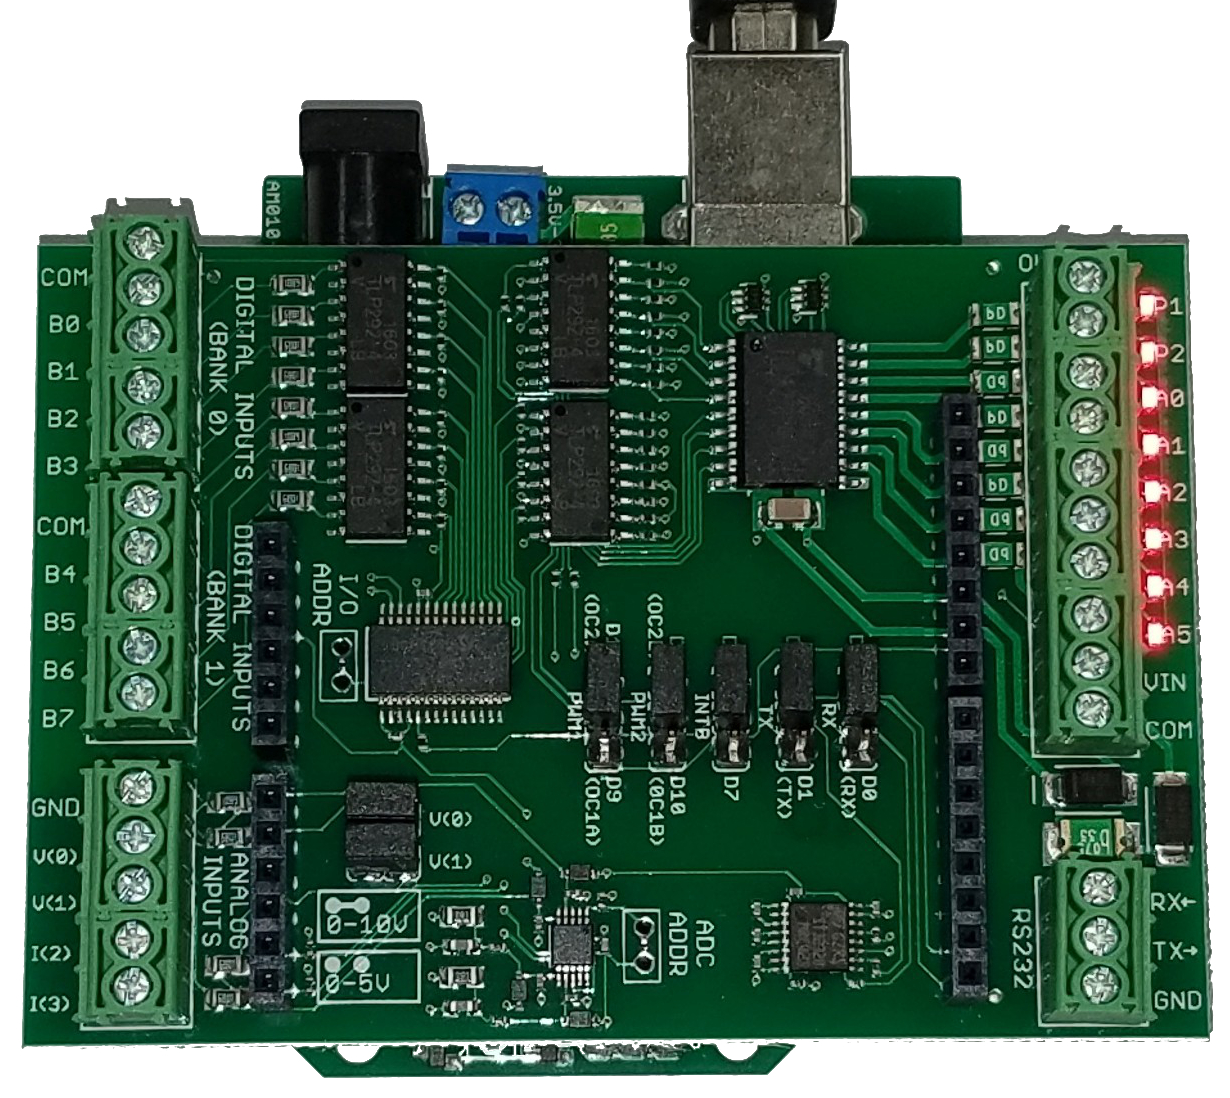 24V Industrial I/O Shield